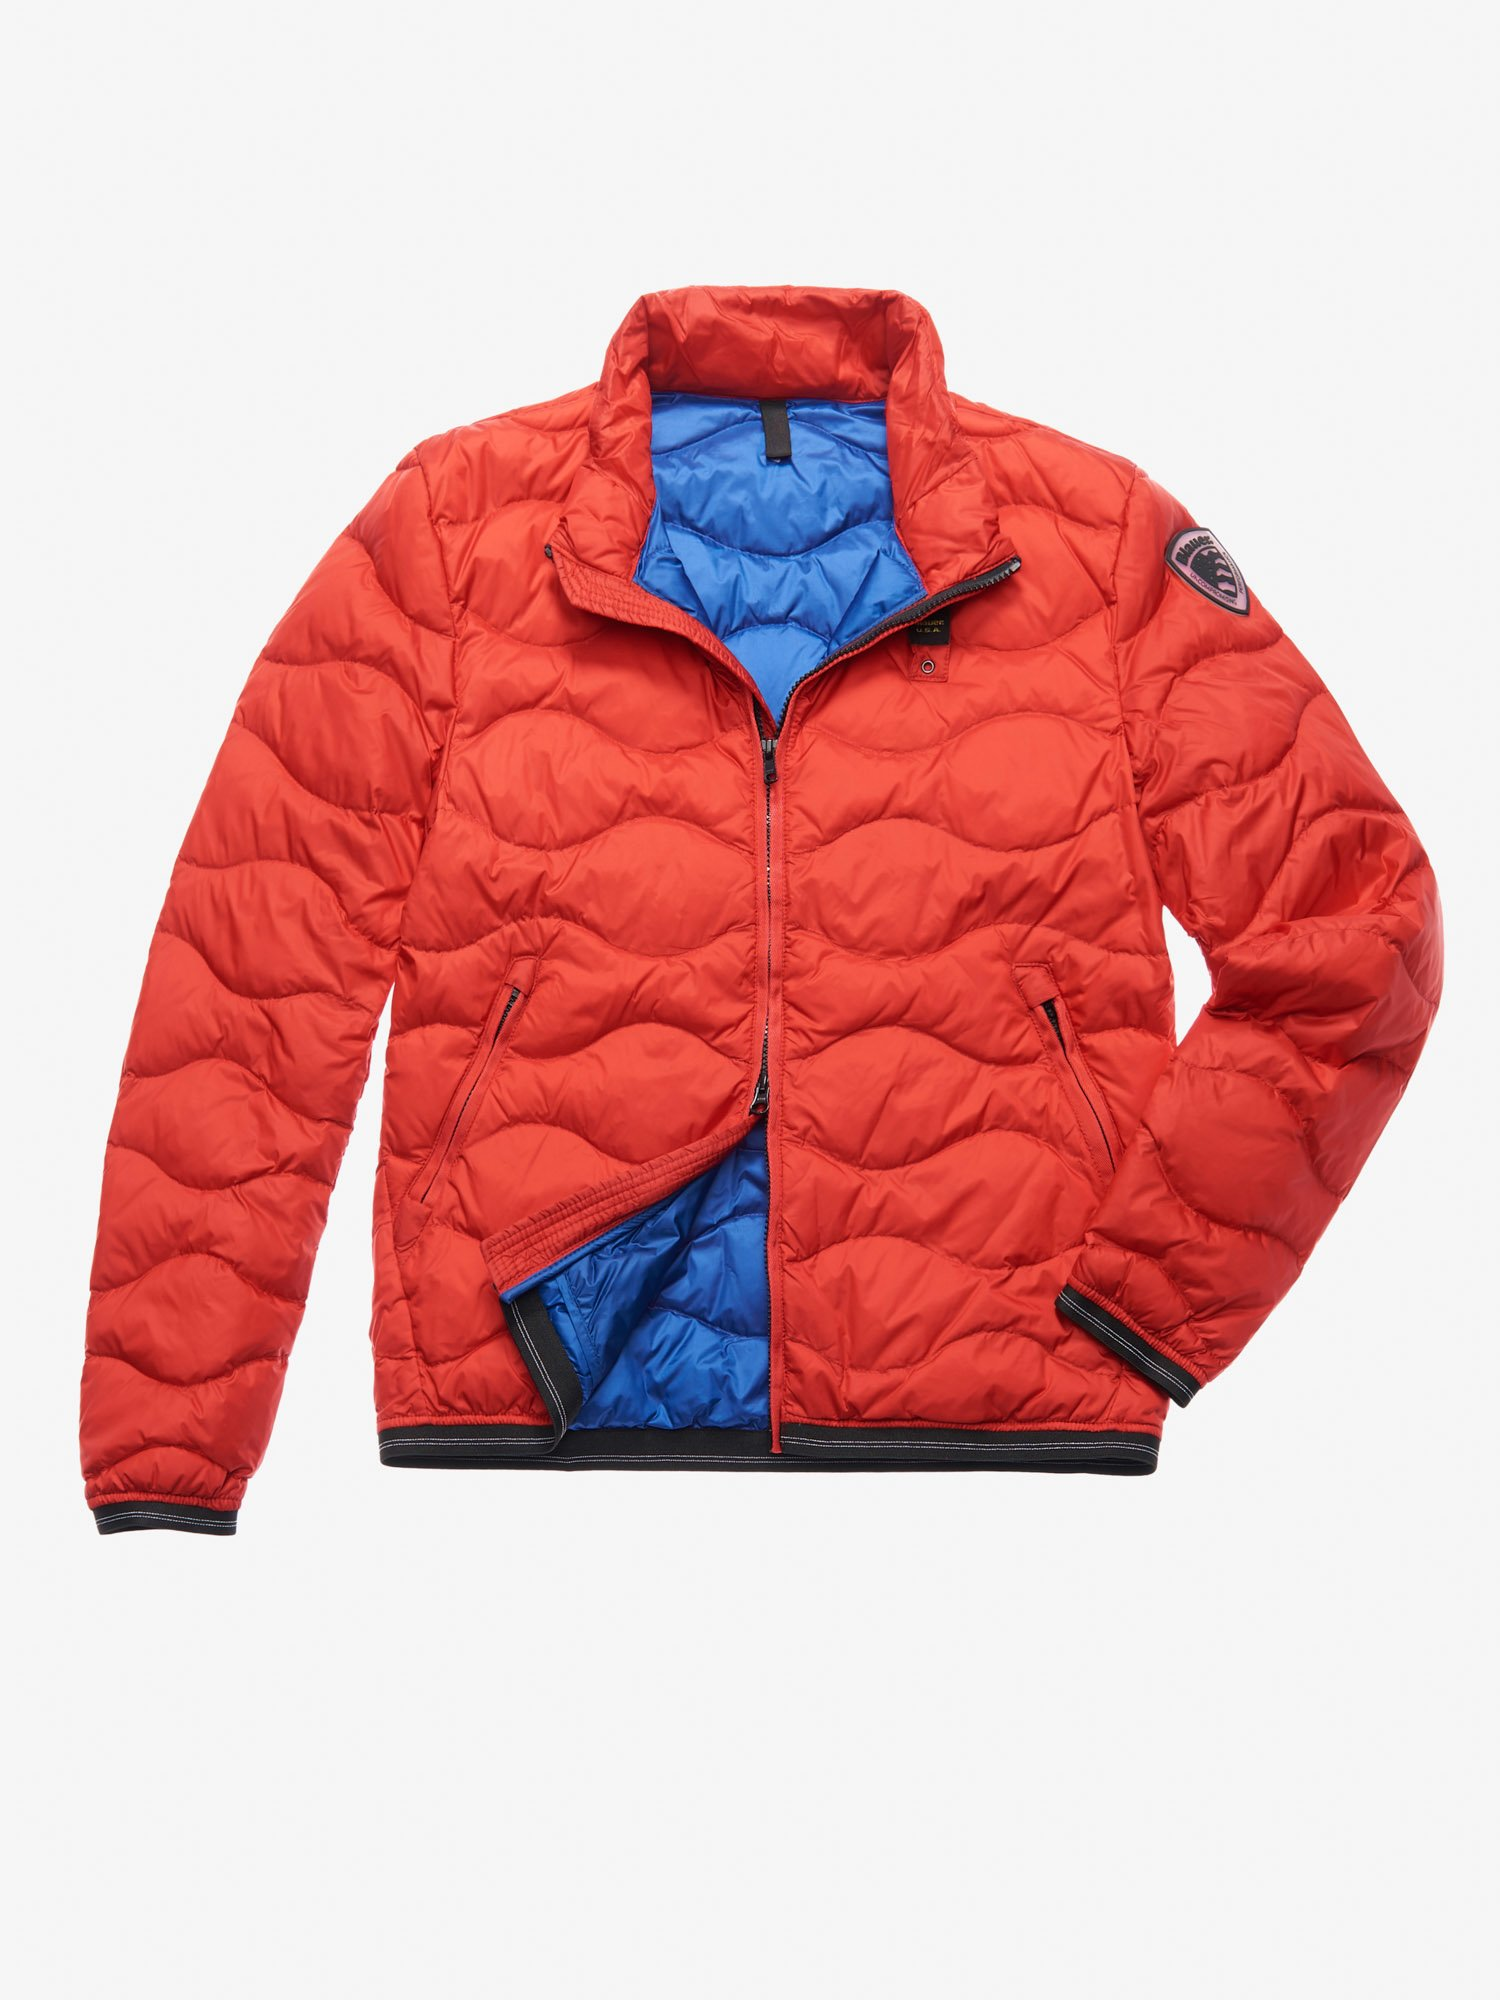 Blauer - HILL WAVE-QUILTED DOWN JACKET - Ginger Red Ins. Blue - Blauer